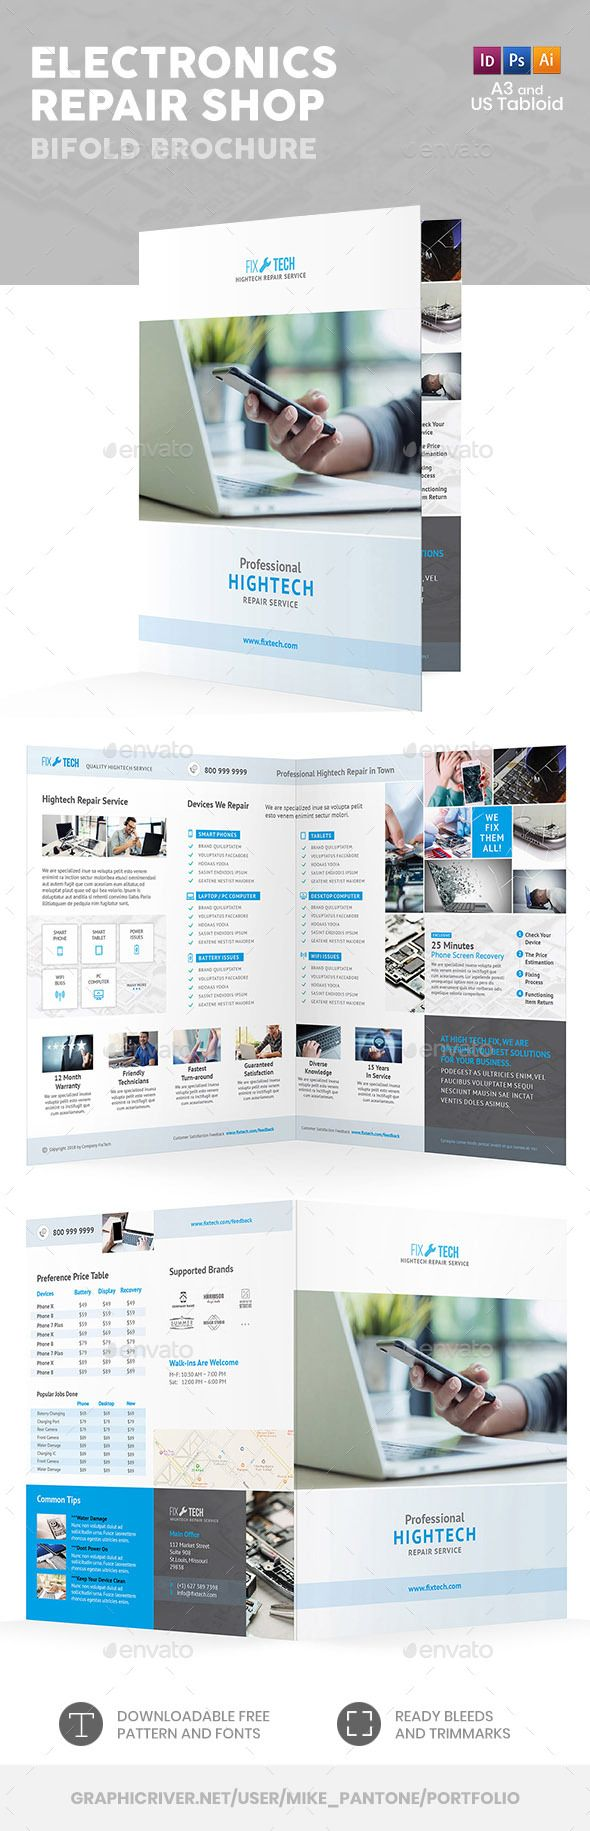 electronic repair shop bifold halffold brochure fully editable professional template for an information brochure